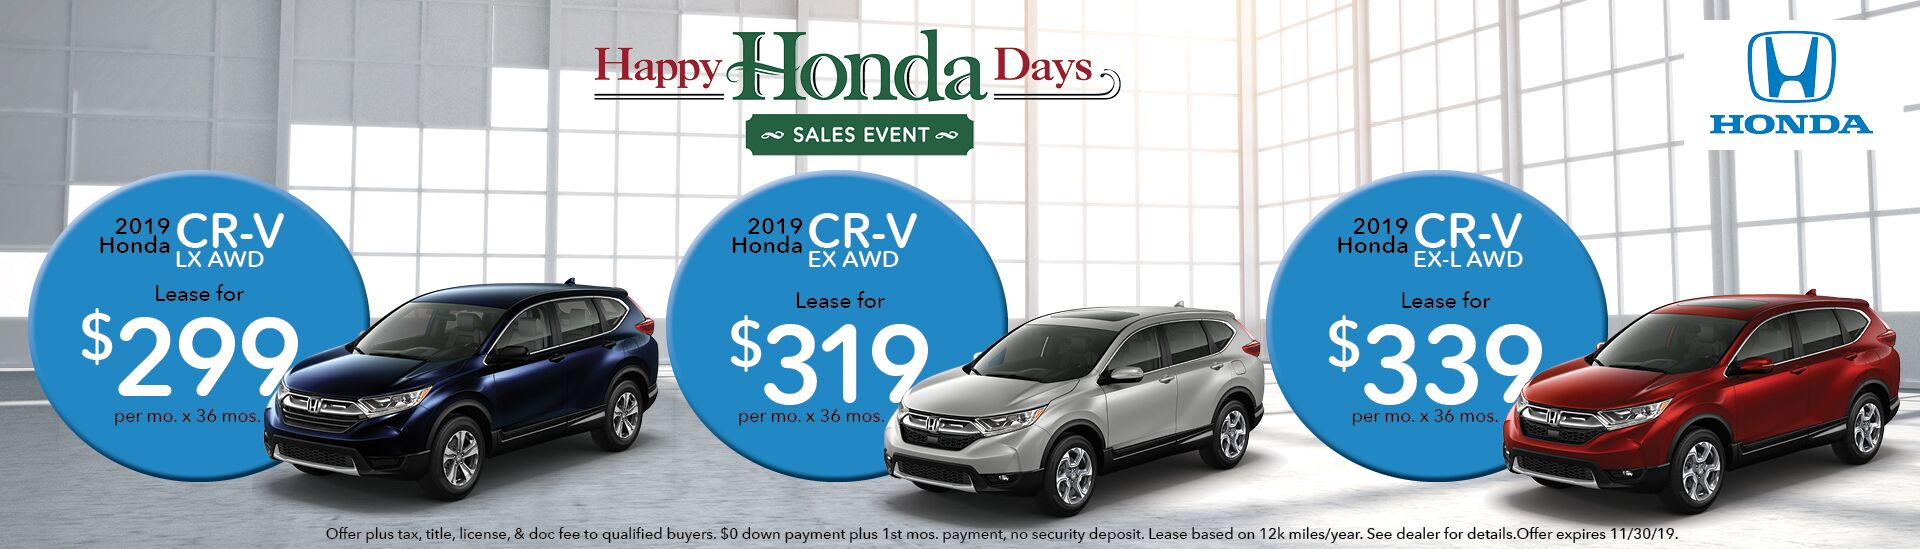 Honda CRV Sales Event